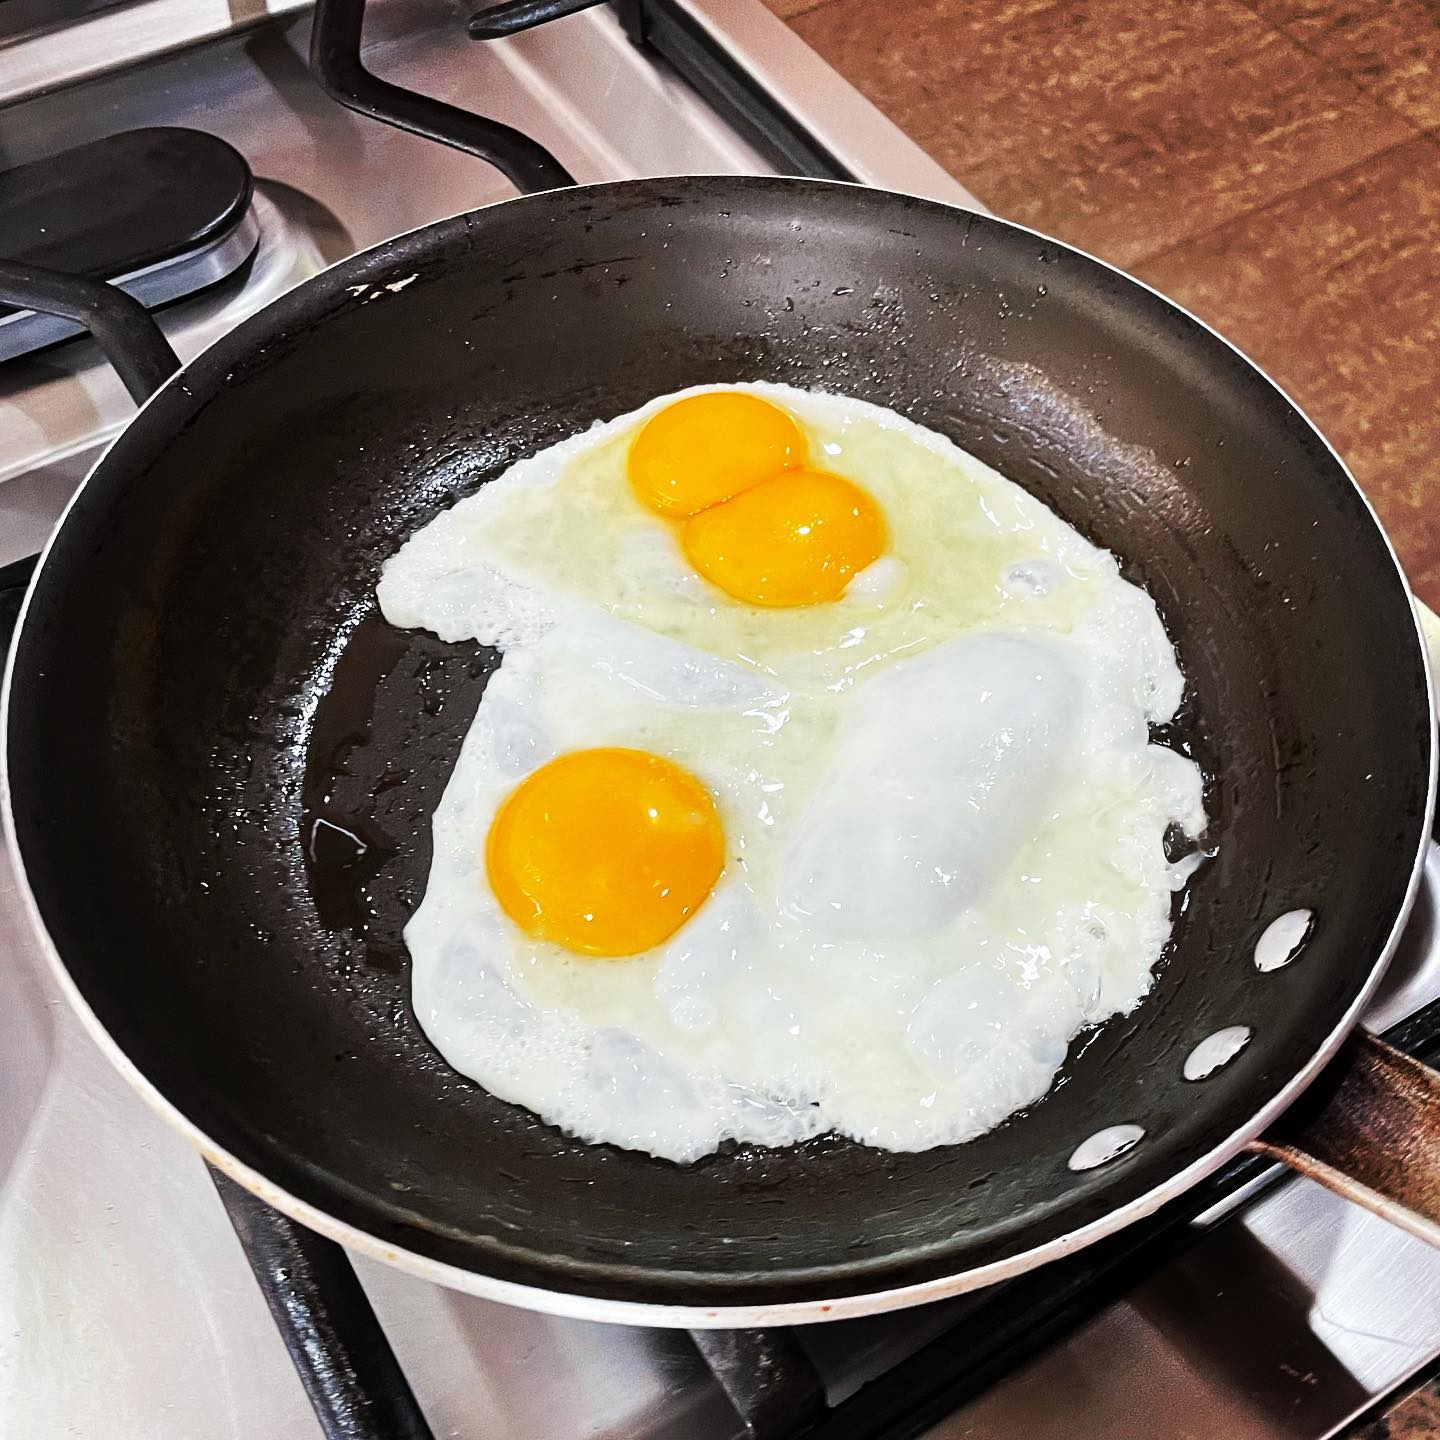 This double yolk better be an omen because I am in desperate need of a great day